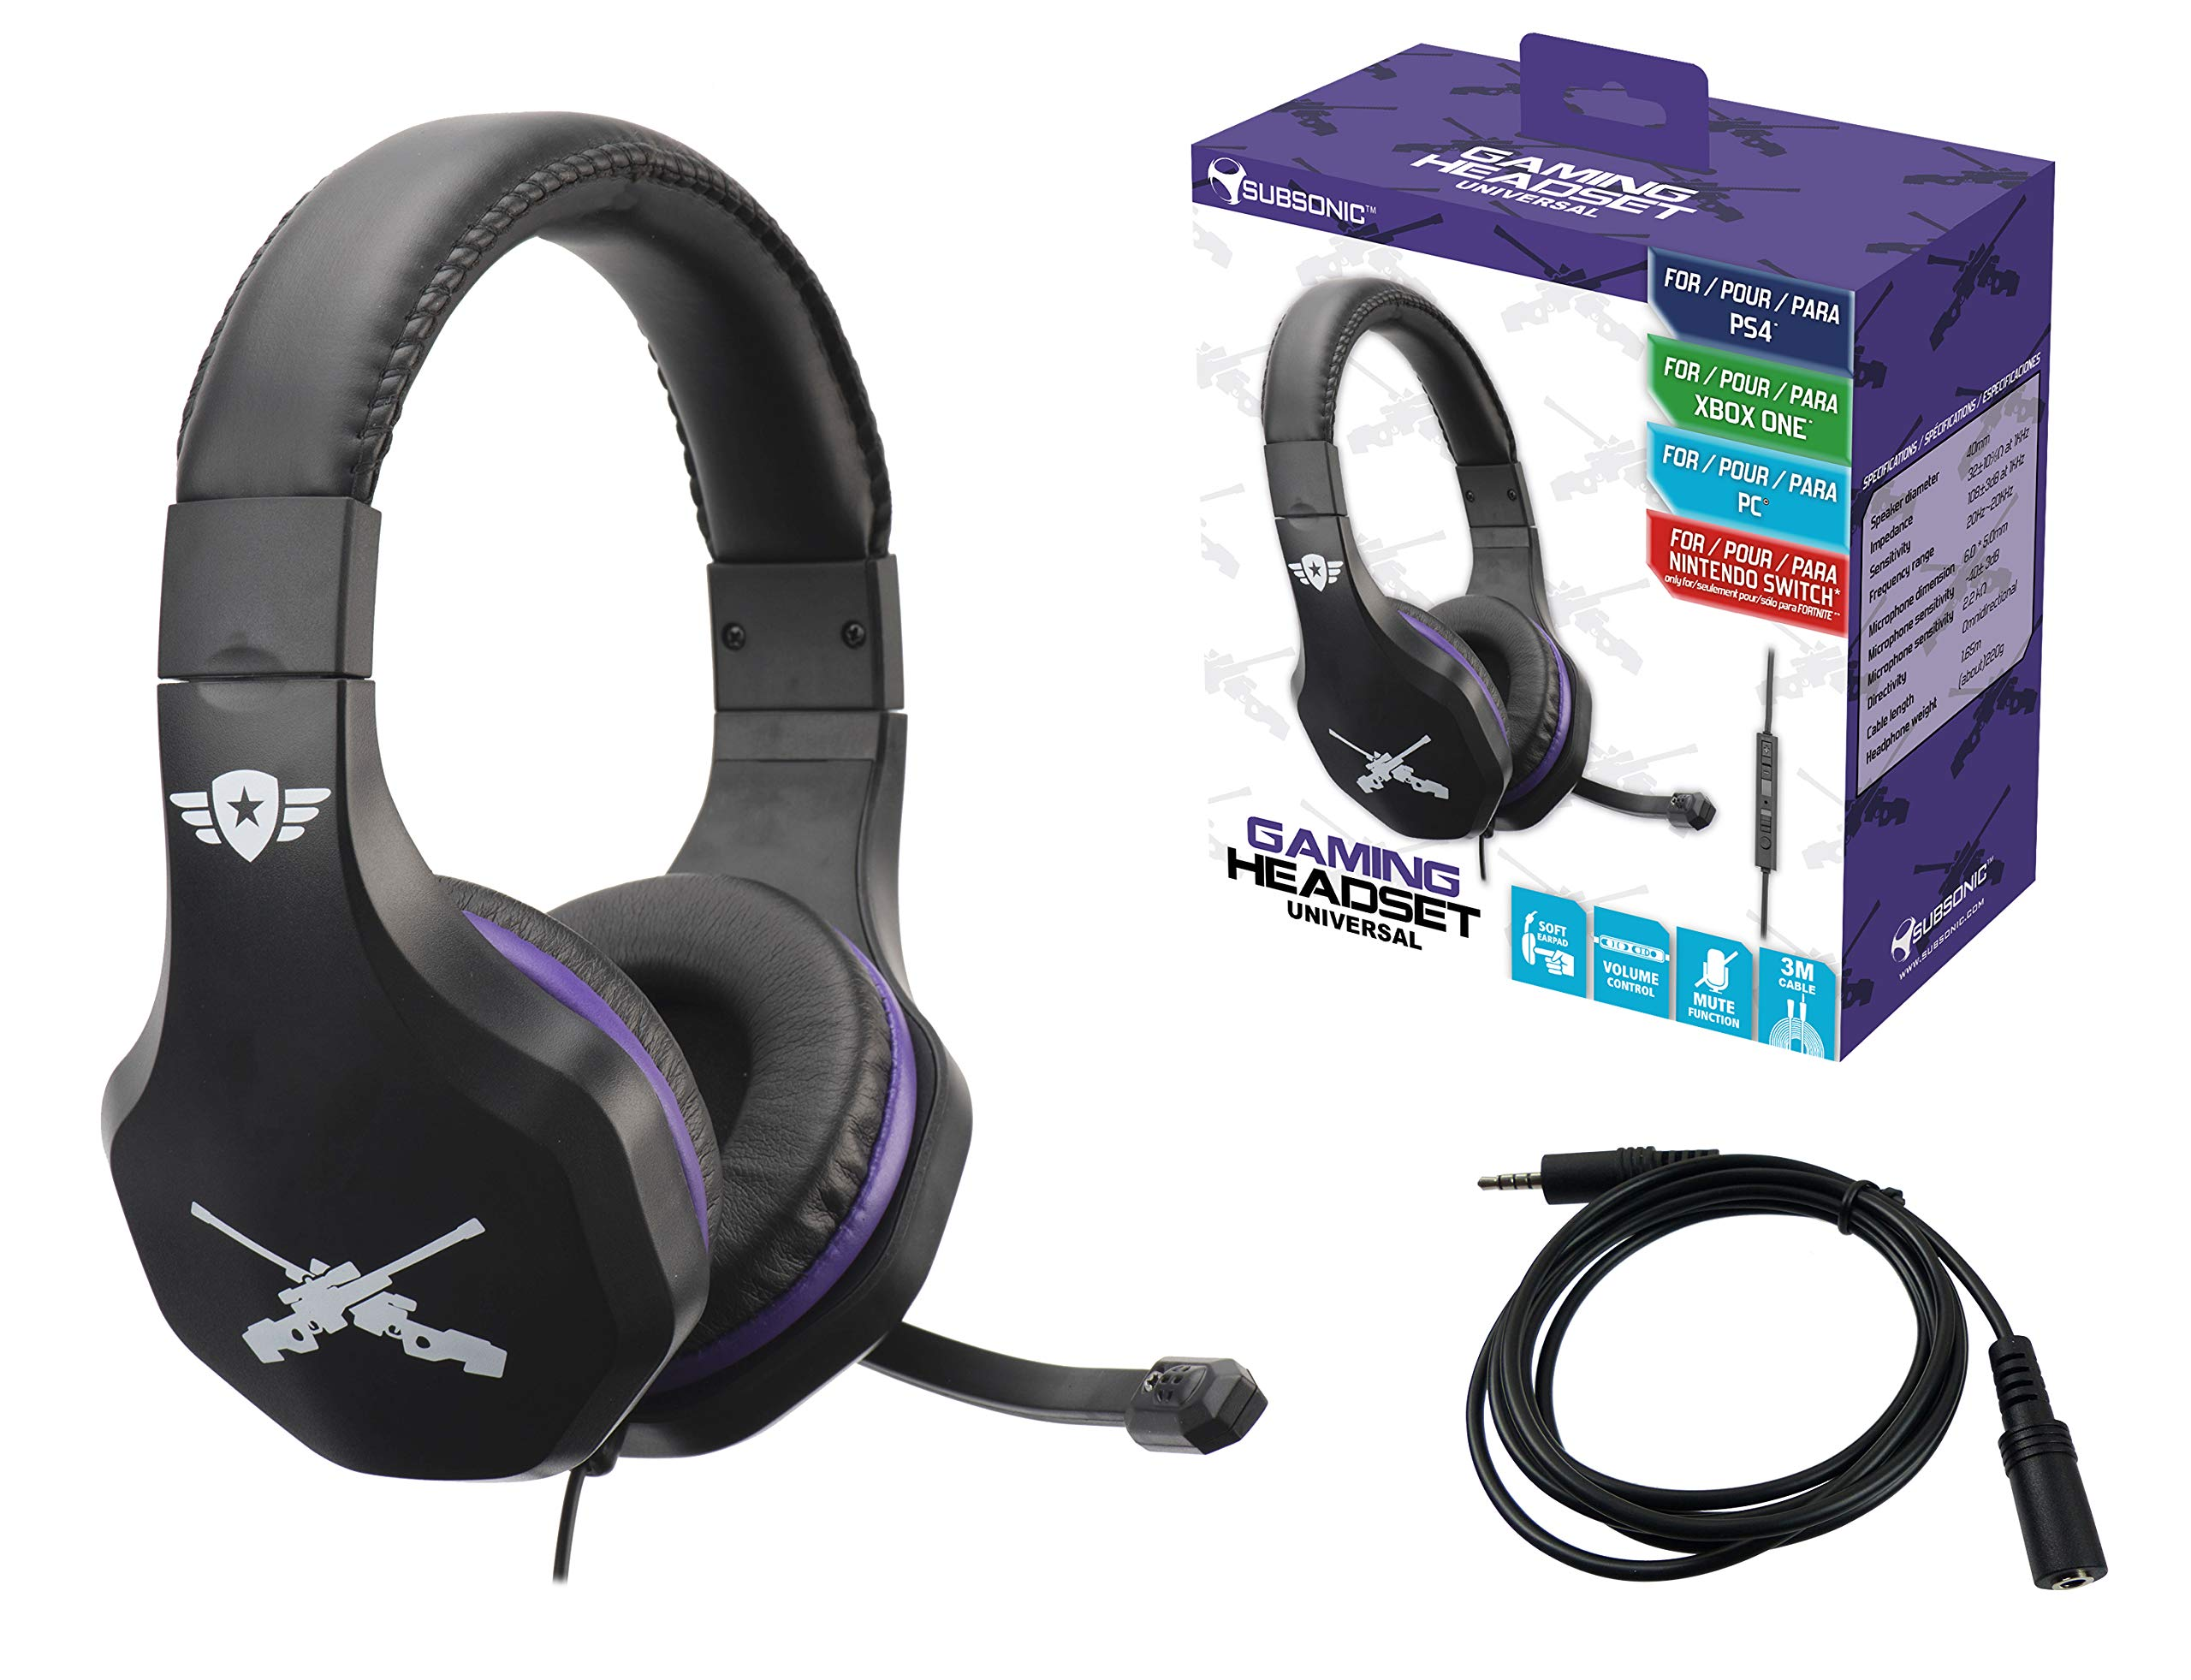 Casque Gaming Avec Micro Pour PlayStation 4 - PS4 Slim - PS4 Pro - Xbox One Universal Purple